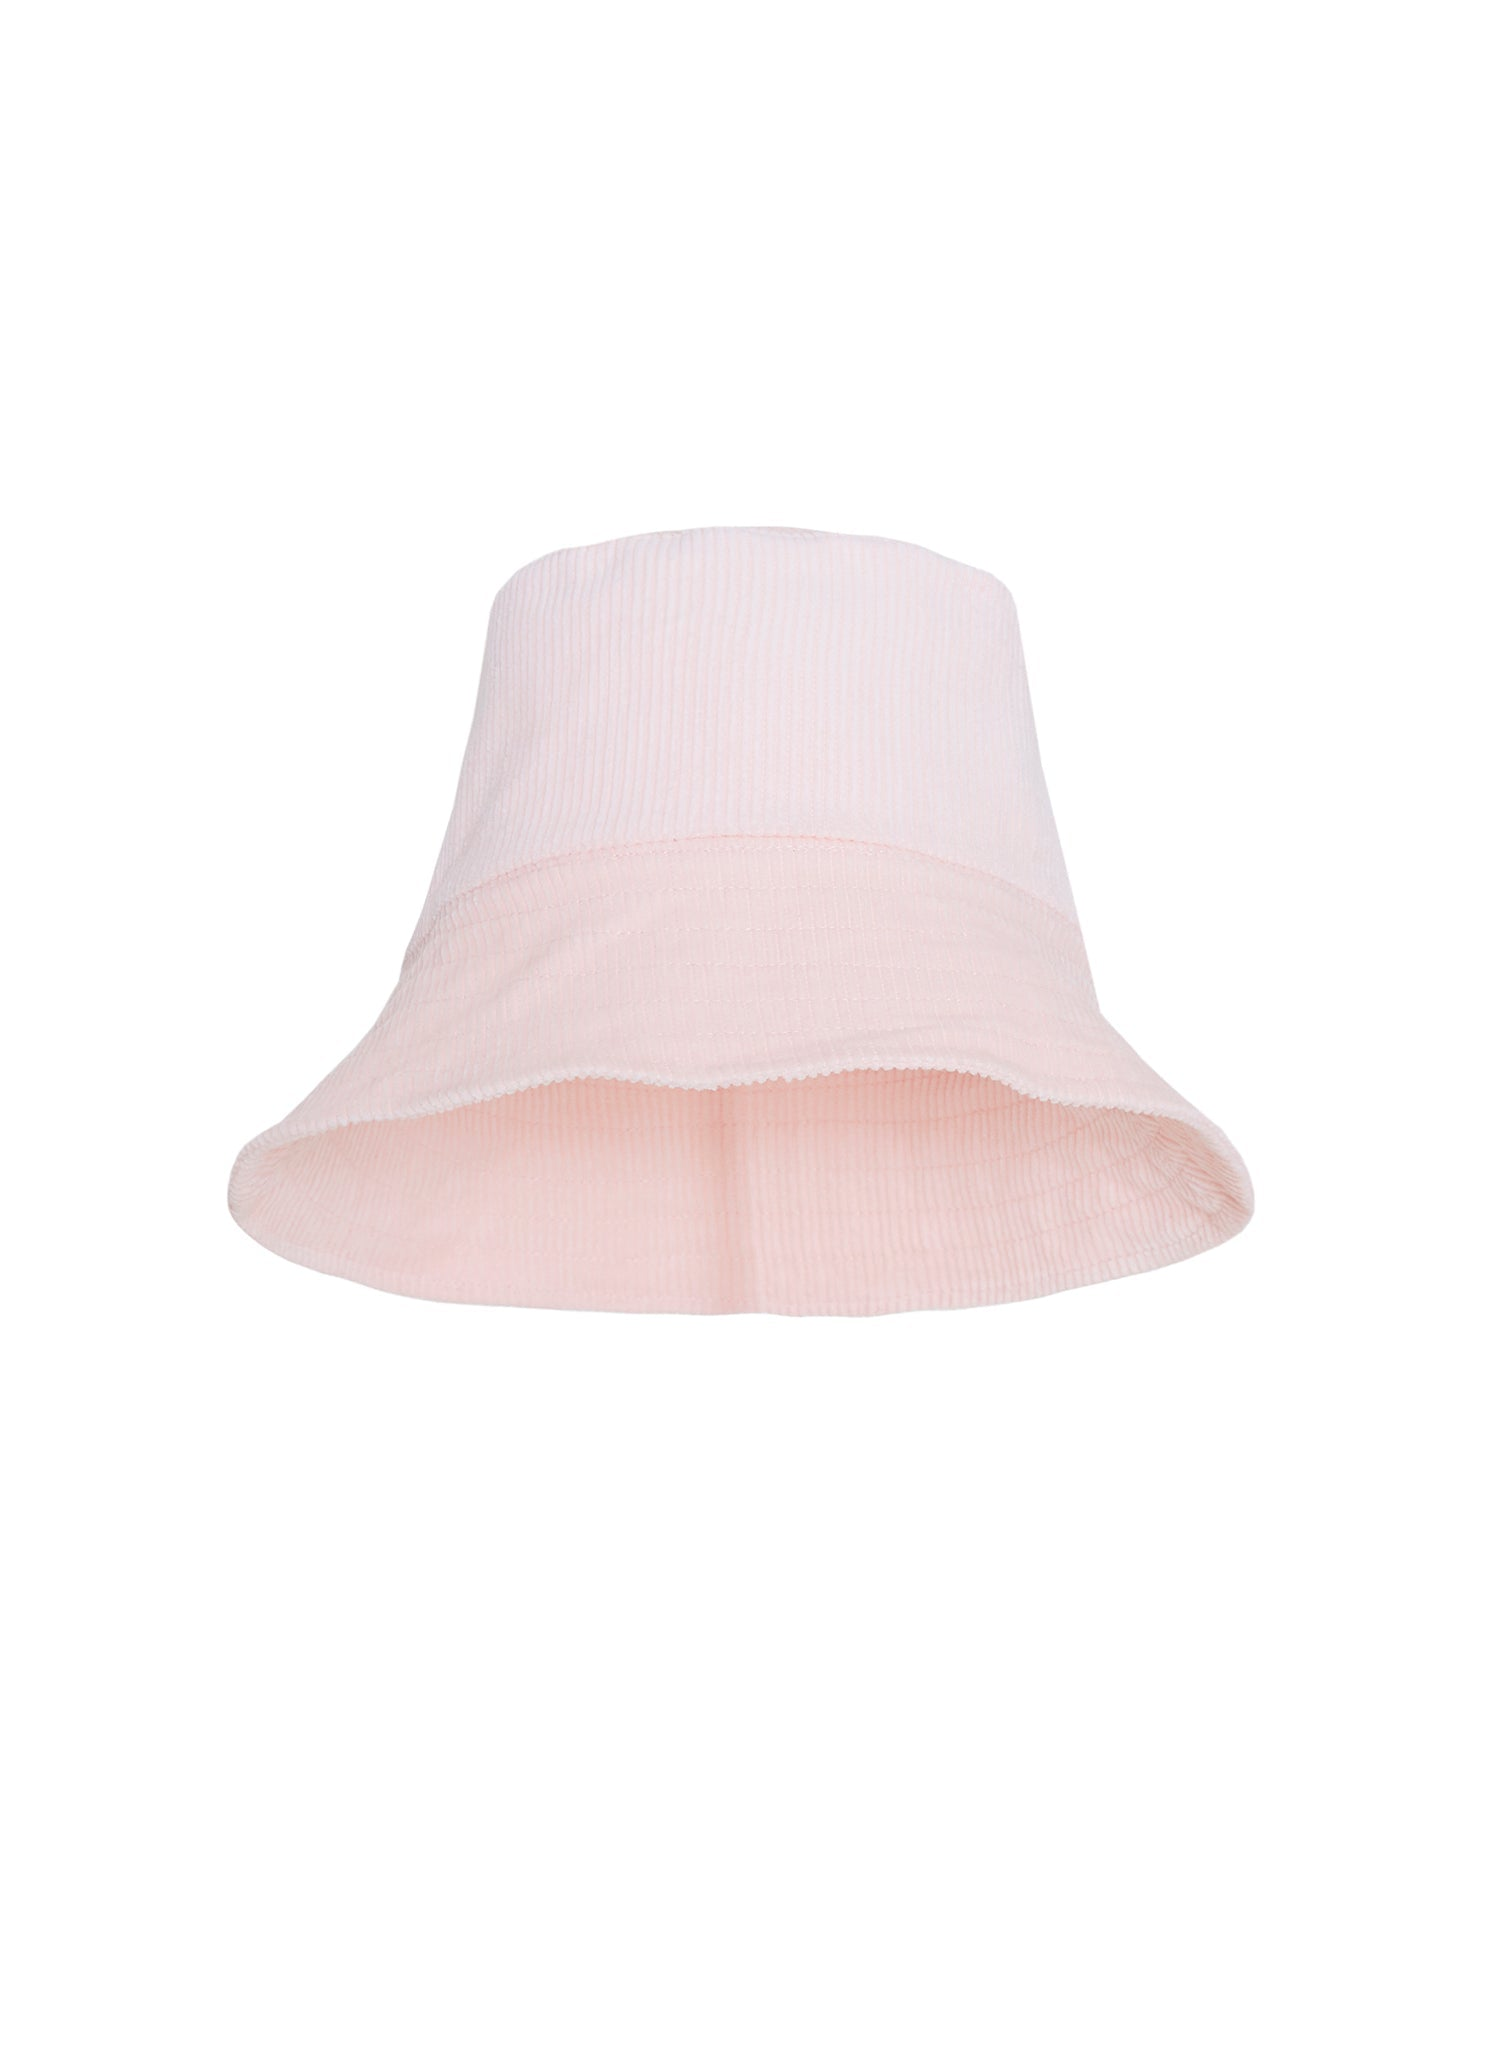 Corduroy Bucket Hat Plain Pale Pink